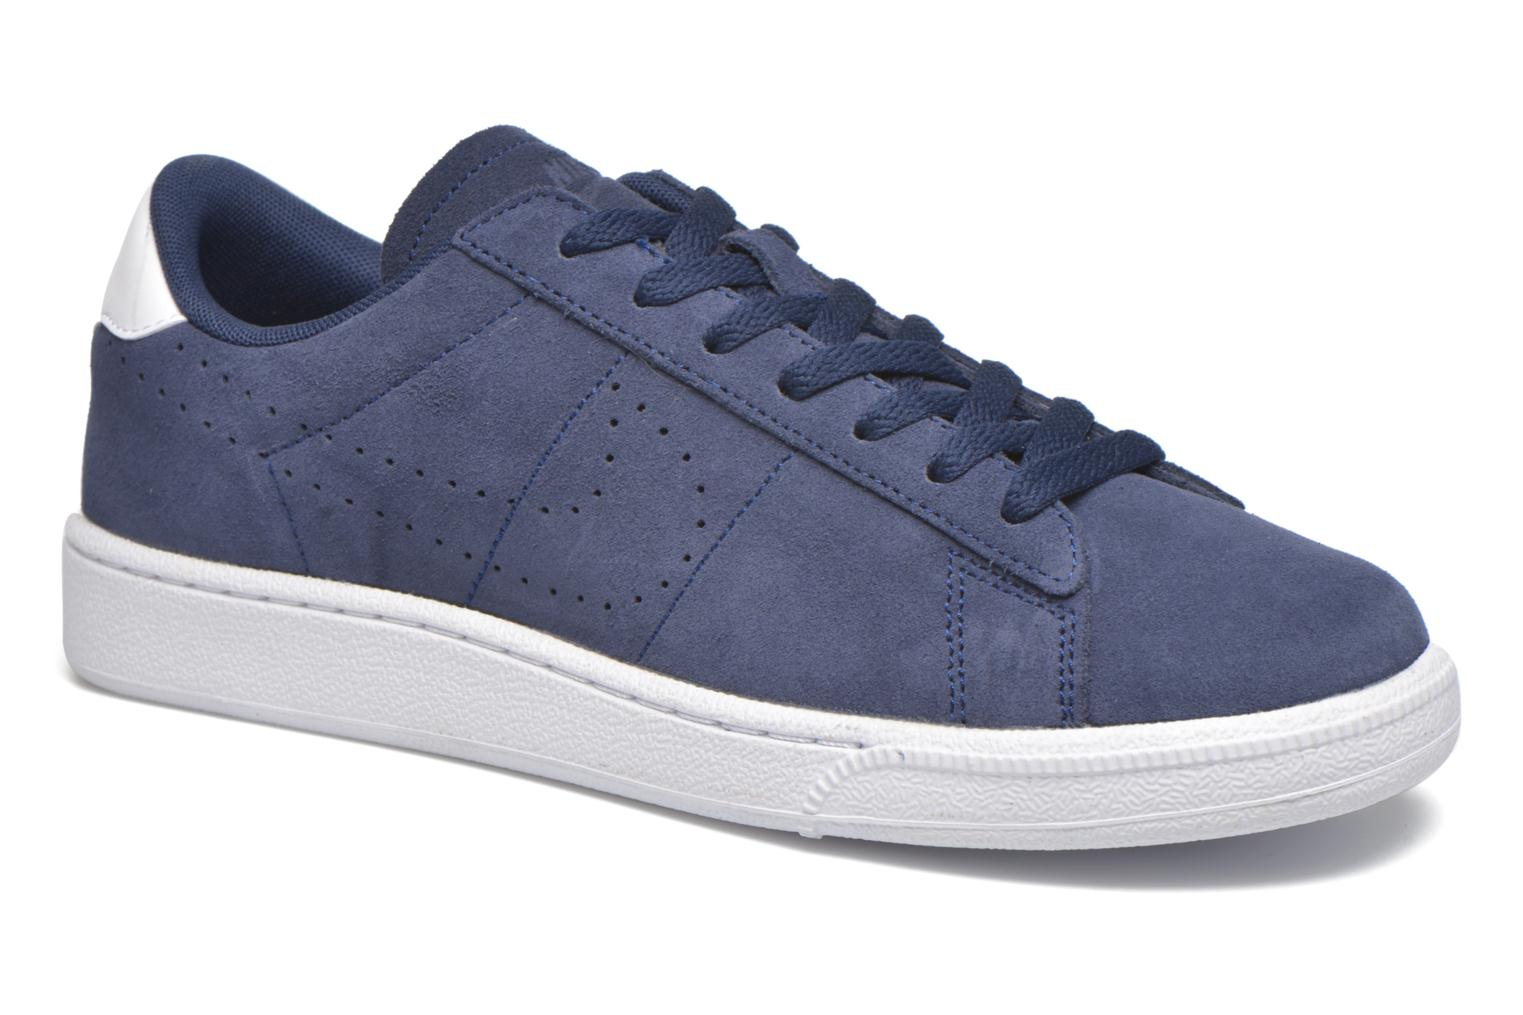 Tennis Classic Cs Suede Midnight Navy/Mdnght Navy-Wht